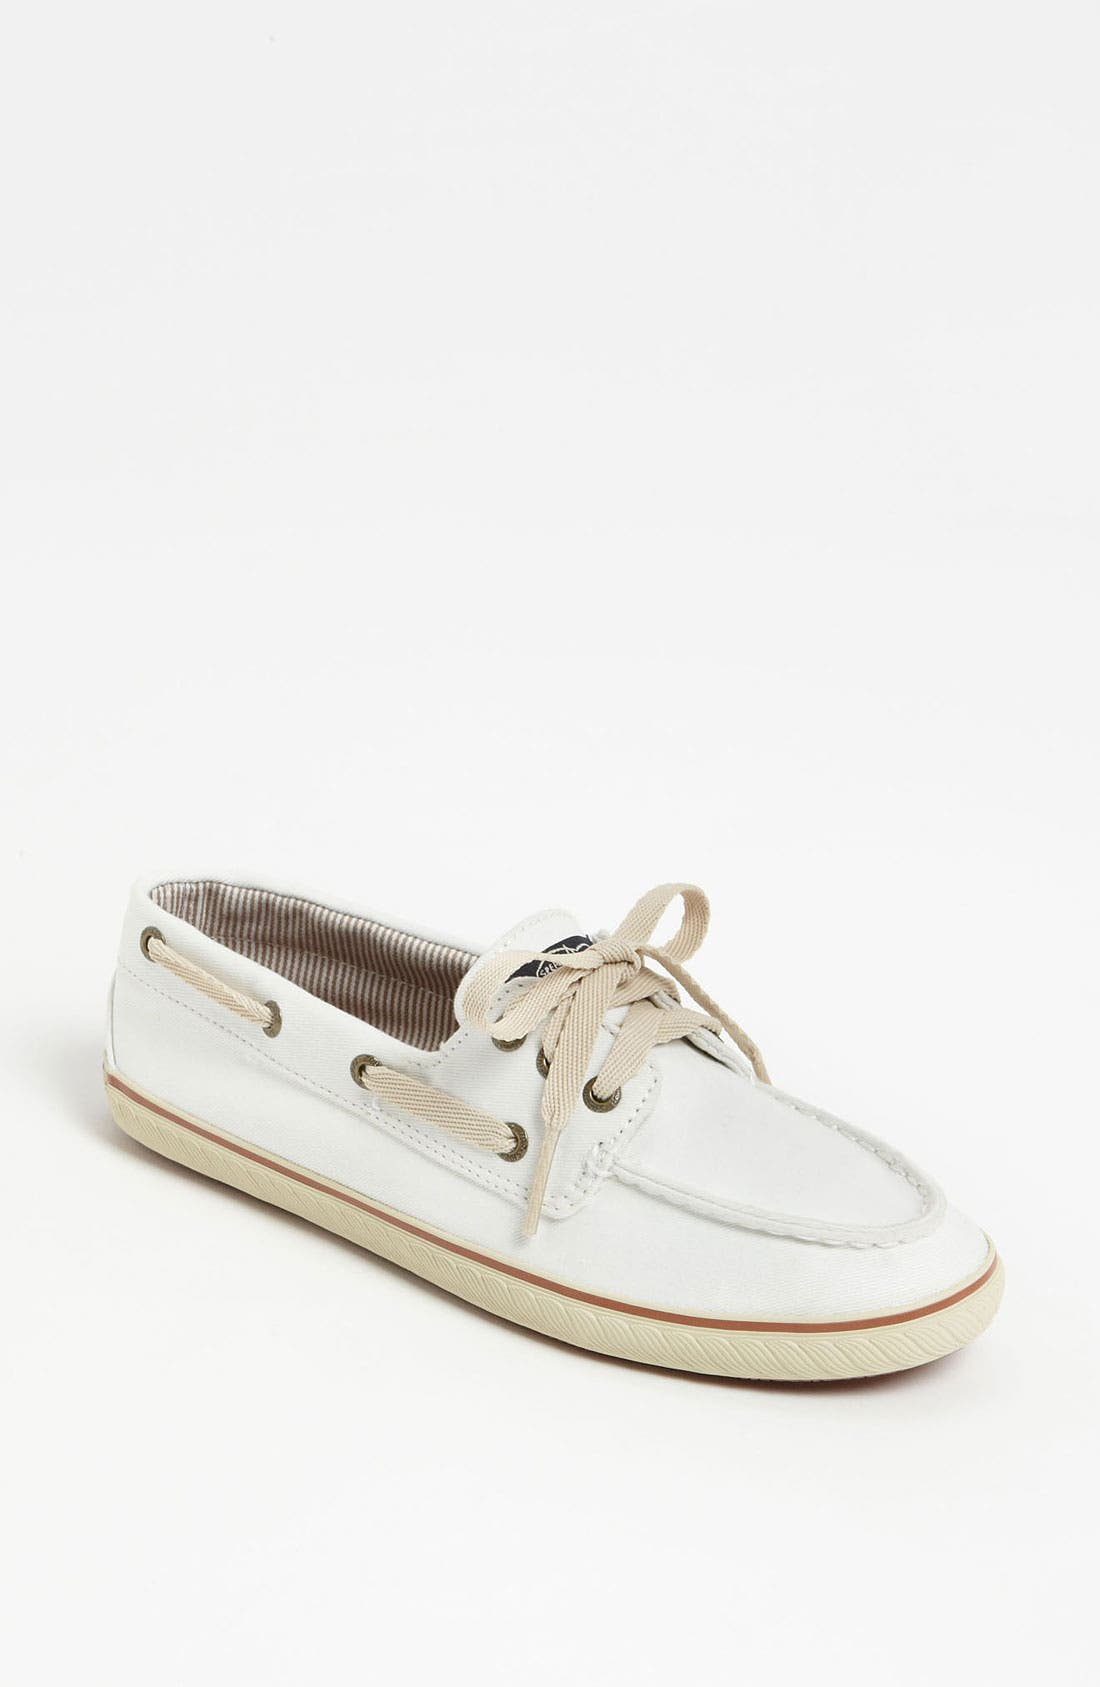 Alternate Image 1 Selected - Sperry Top-Sider® 'Cruiser' Sneaker